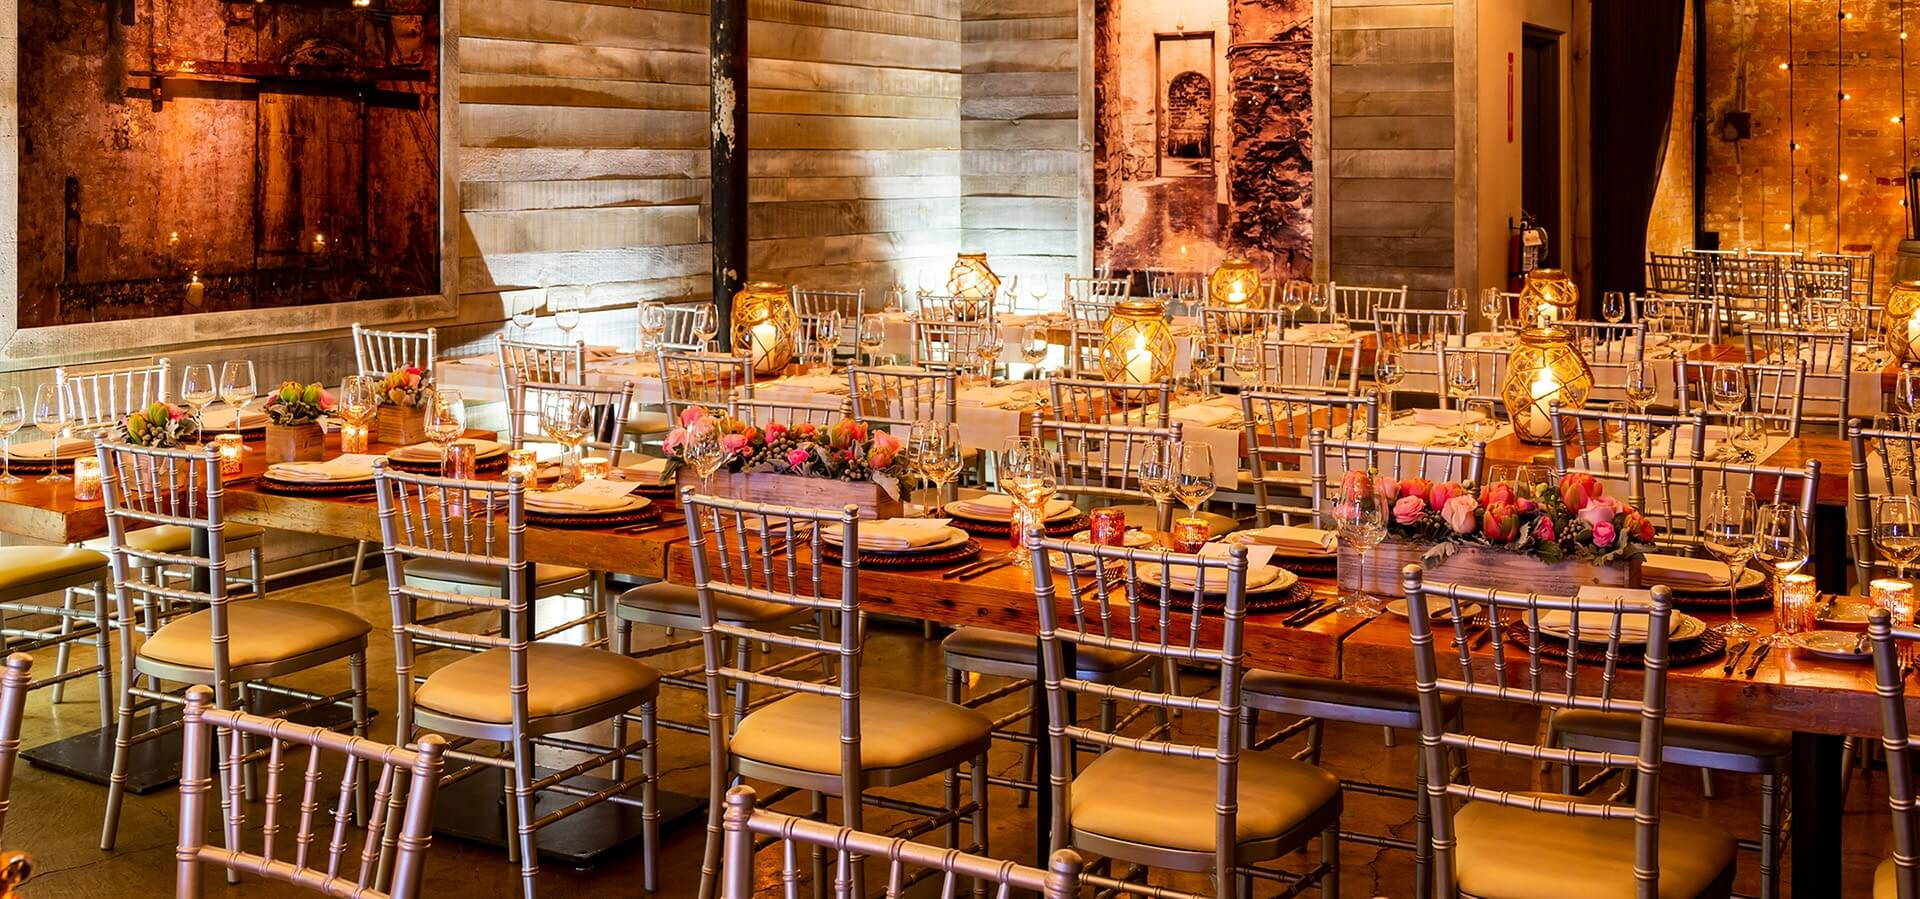 Hero image for 10 Benefits of Intimate Weddings You May Not Have Thought of